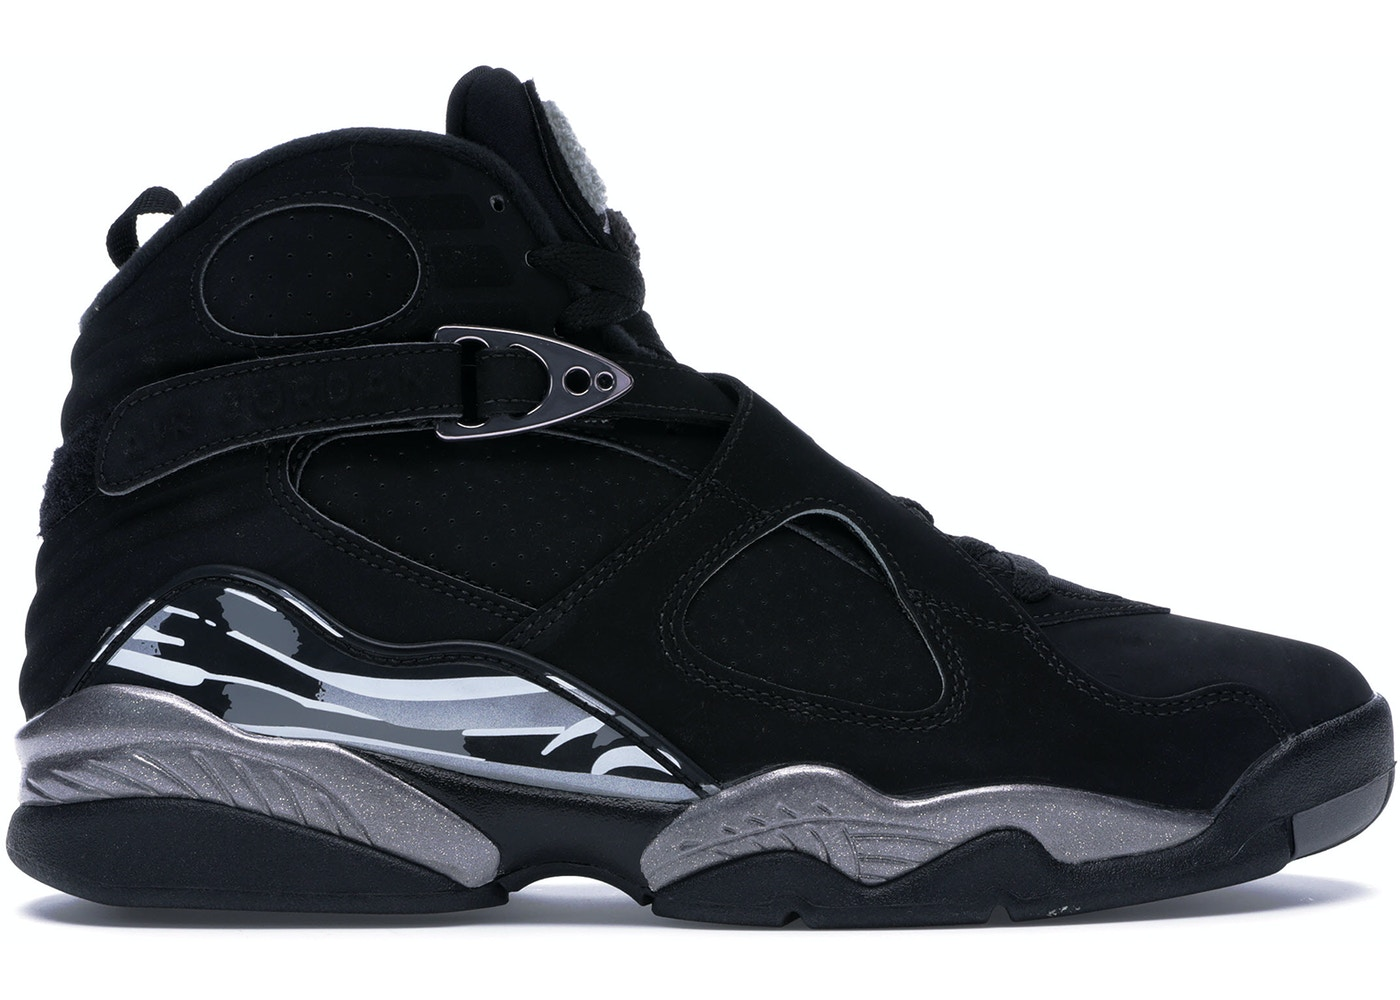 42f68ed1d92 Buy Air Jordan 8 Shoes   Deadstock Sneakers